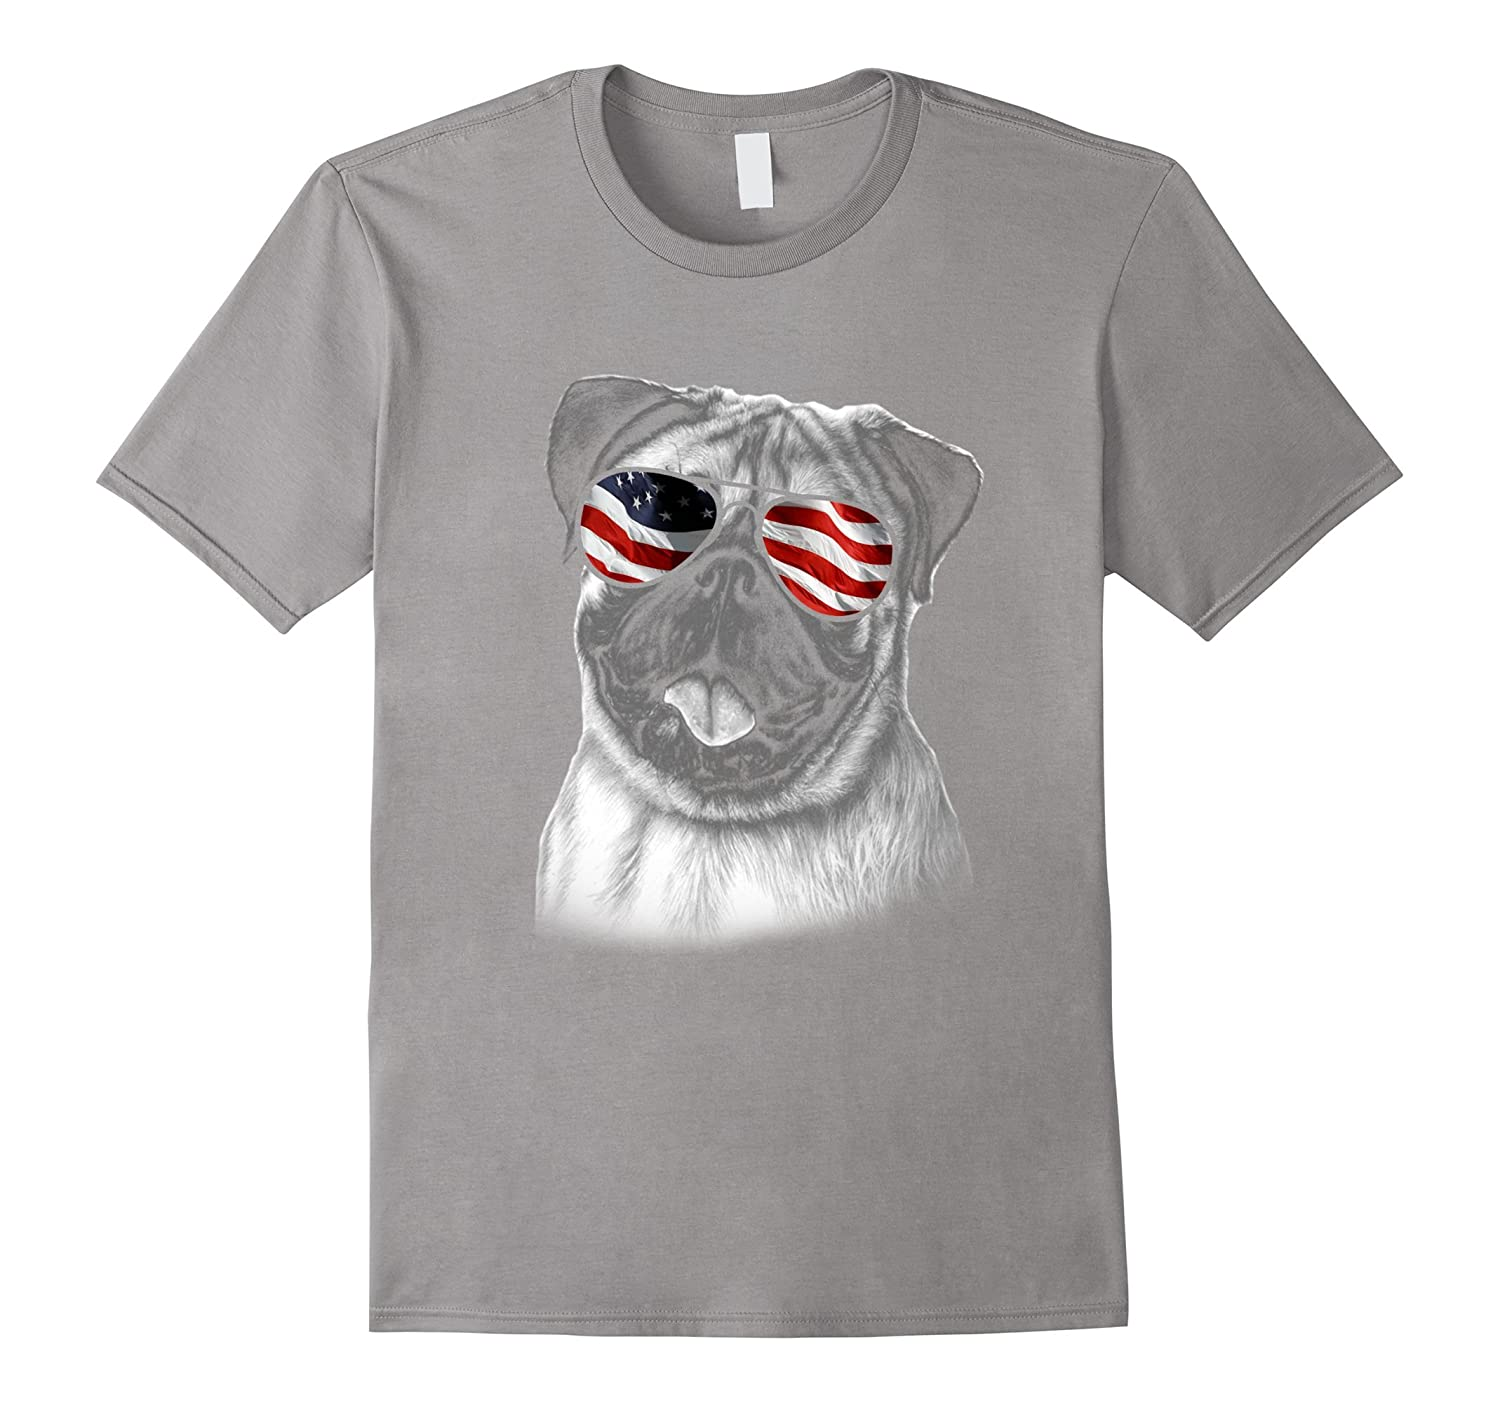 Funny Pug American Flag Dog T-Shirt 4th of July Patriotic